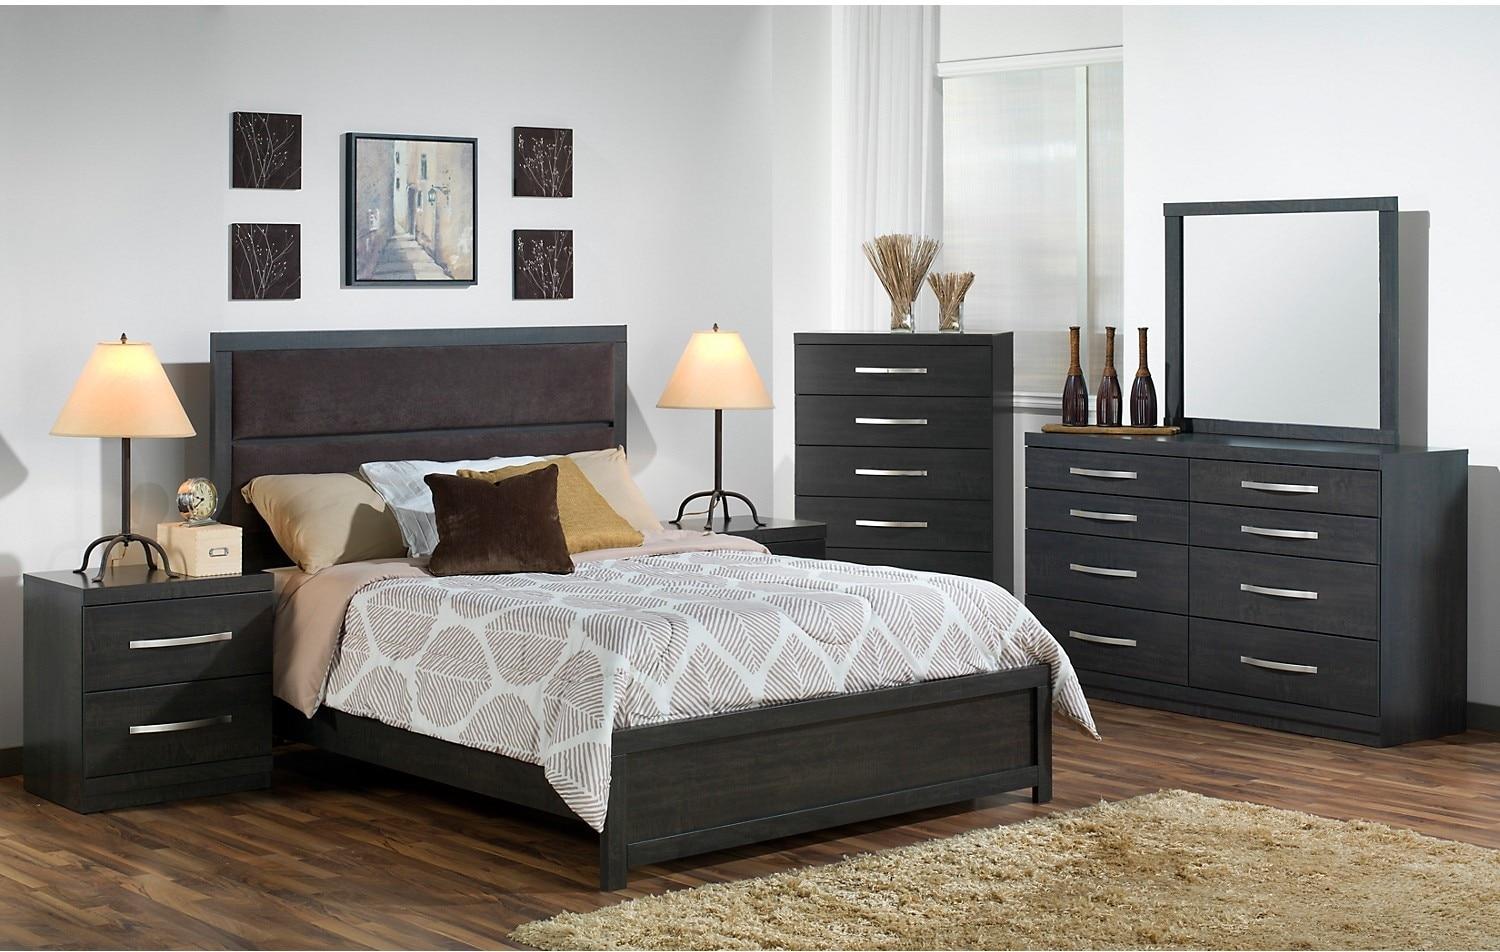 Bedroom Furniture - Willowdale King 5-Piece Bedroom Package